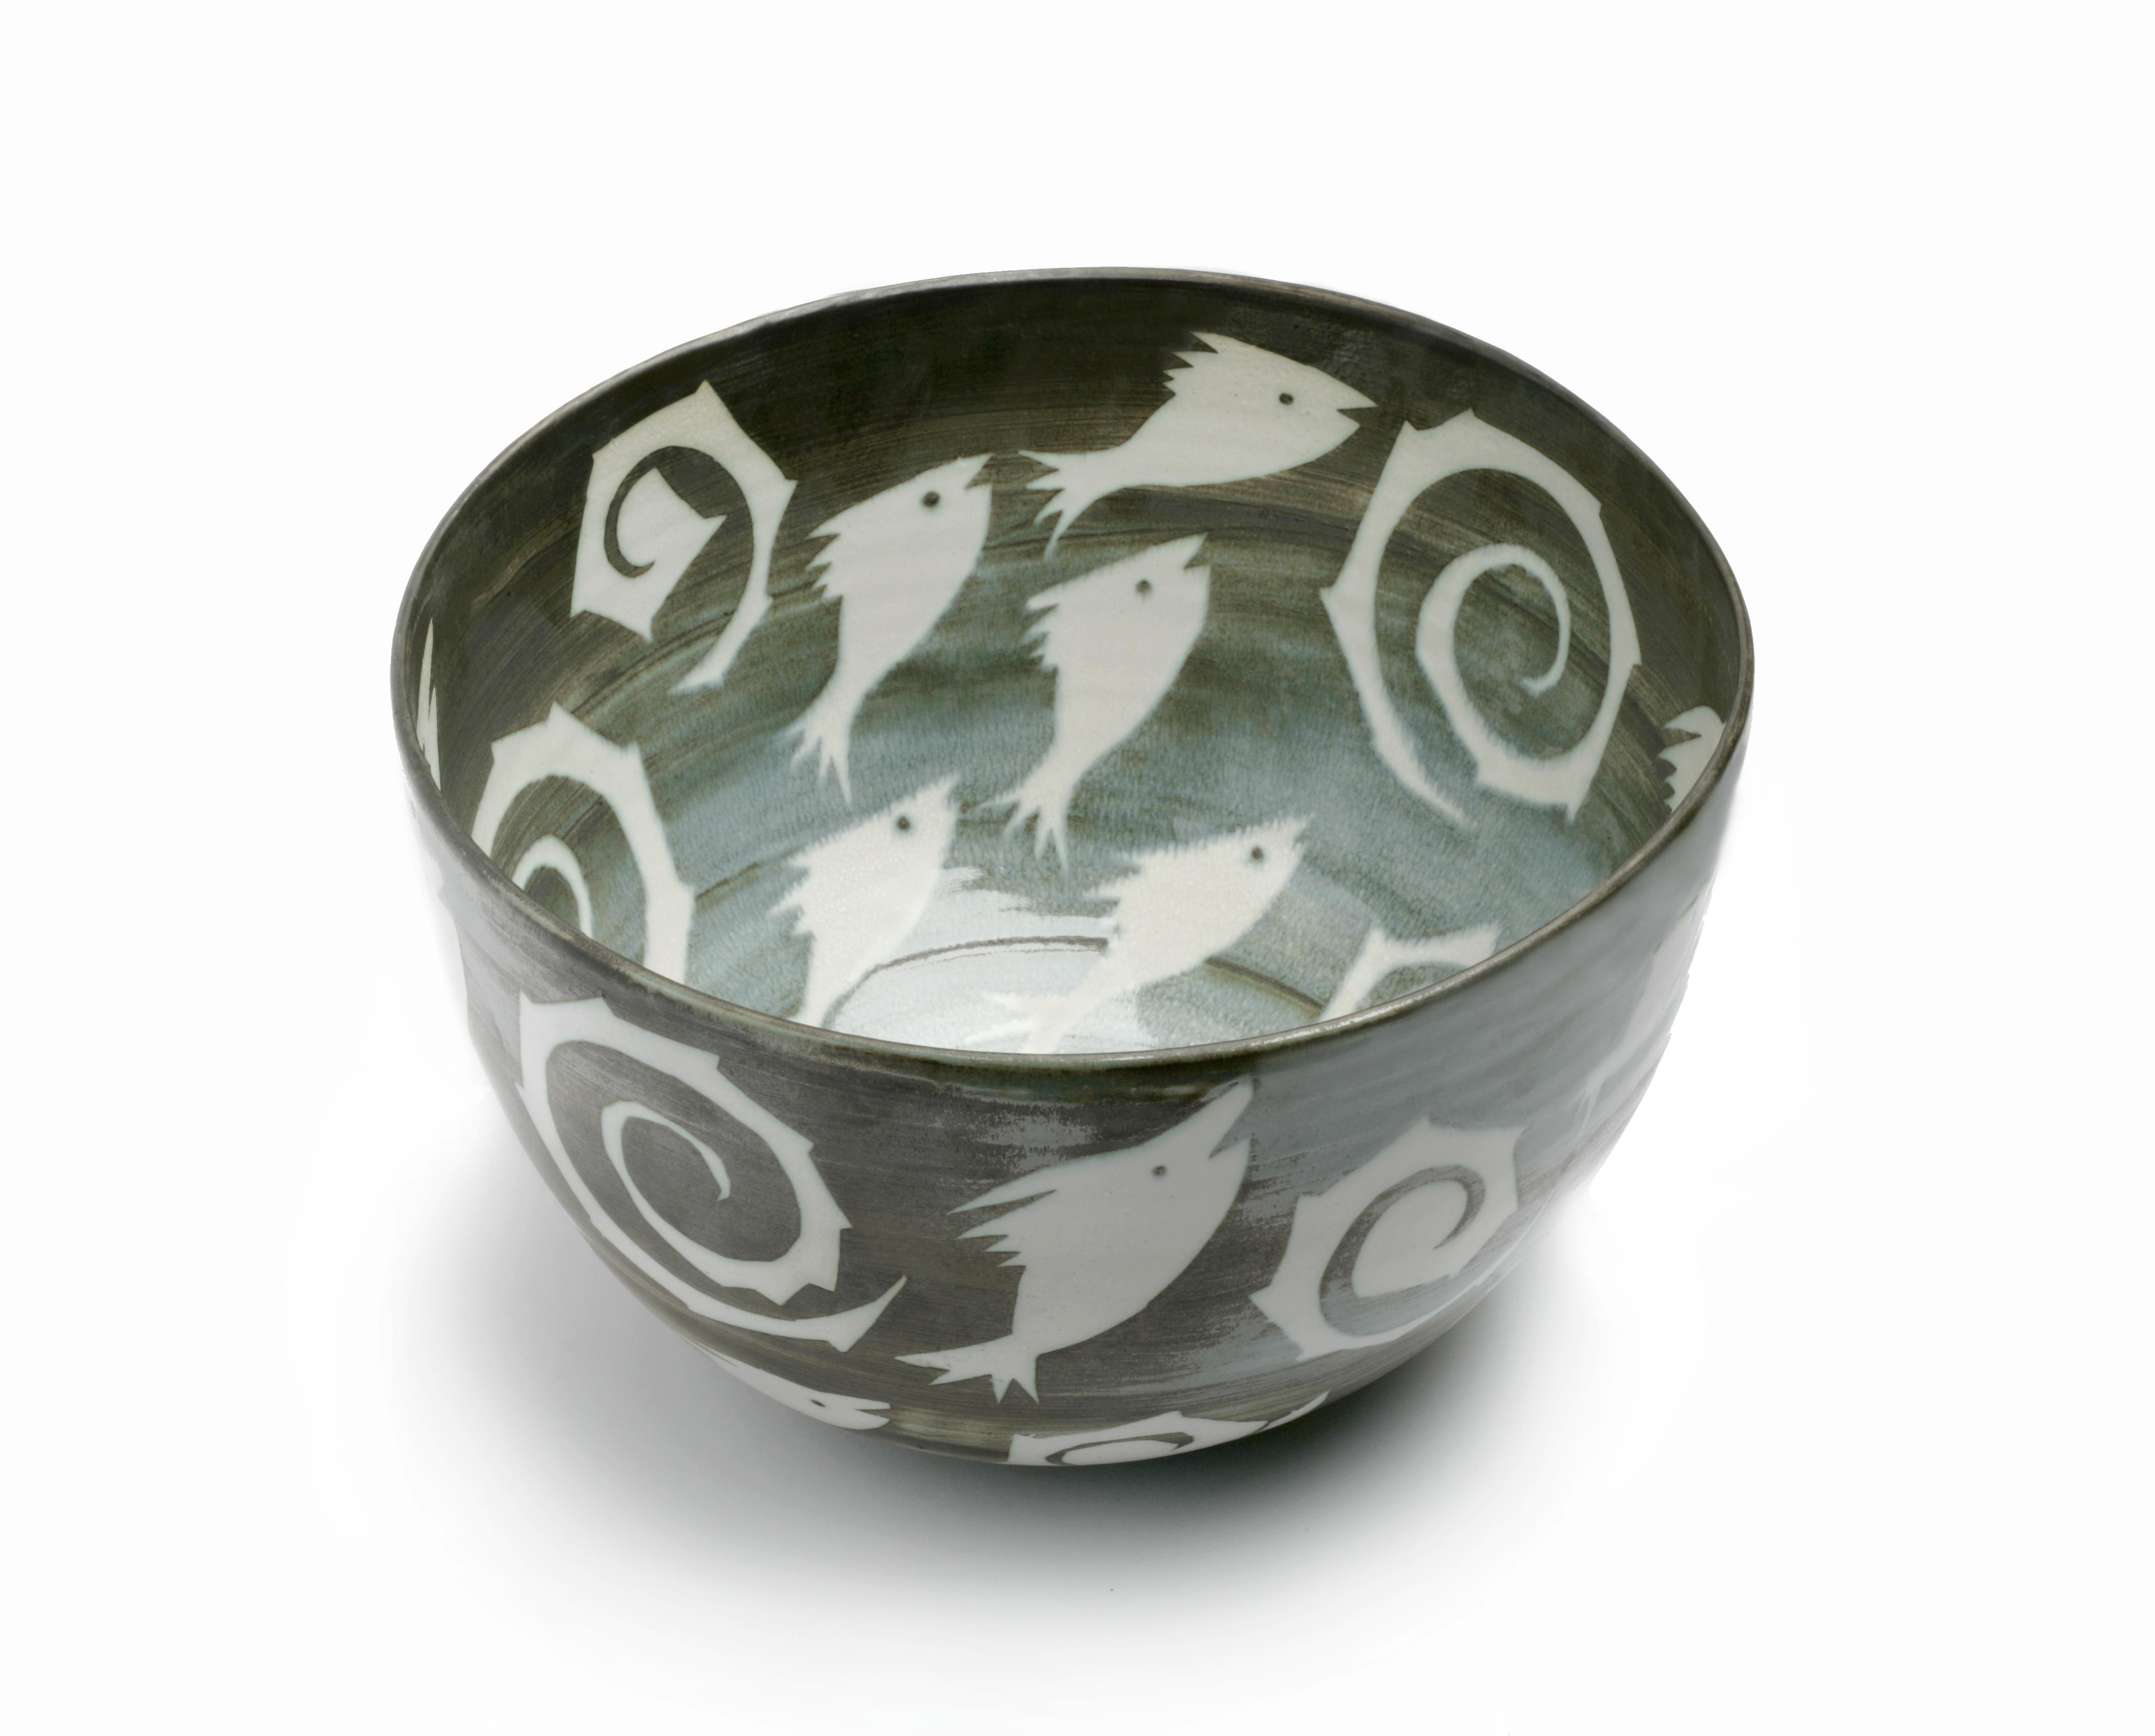 fih bowl with spirals